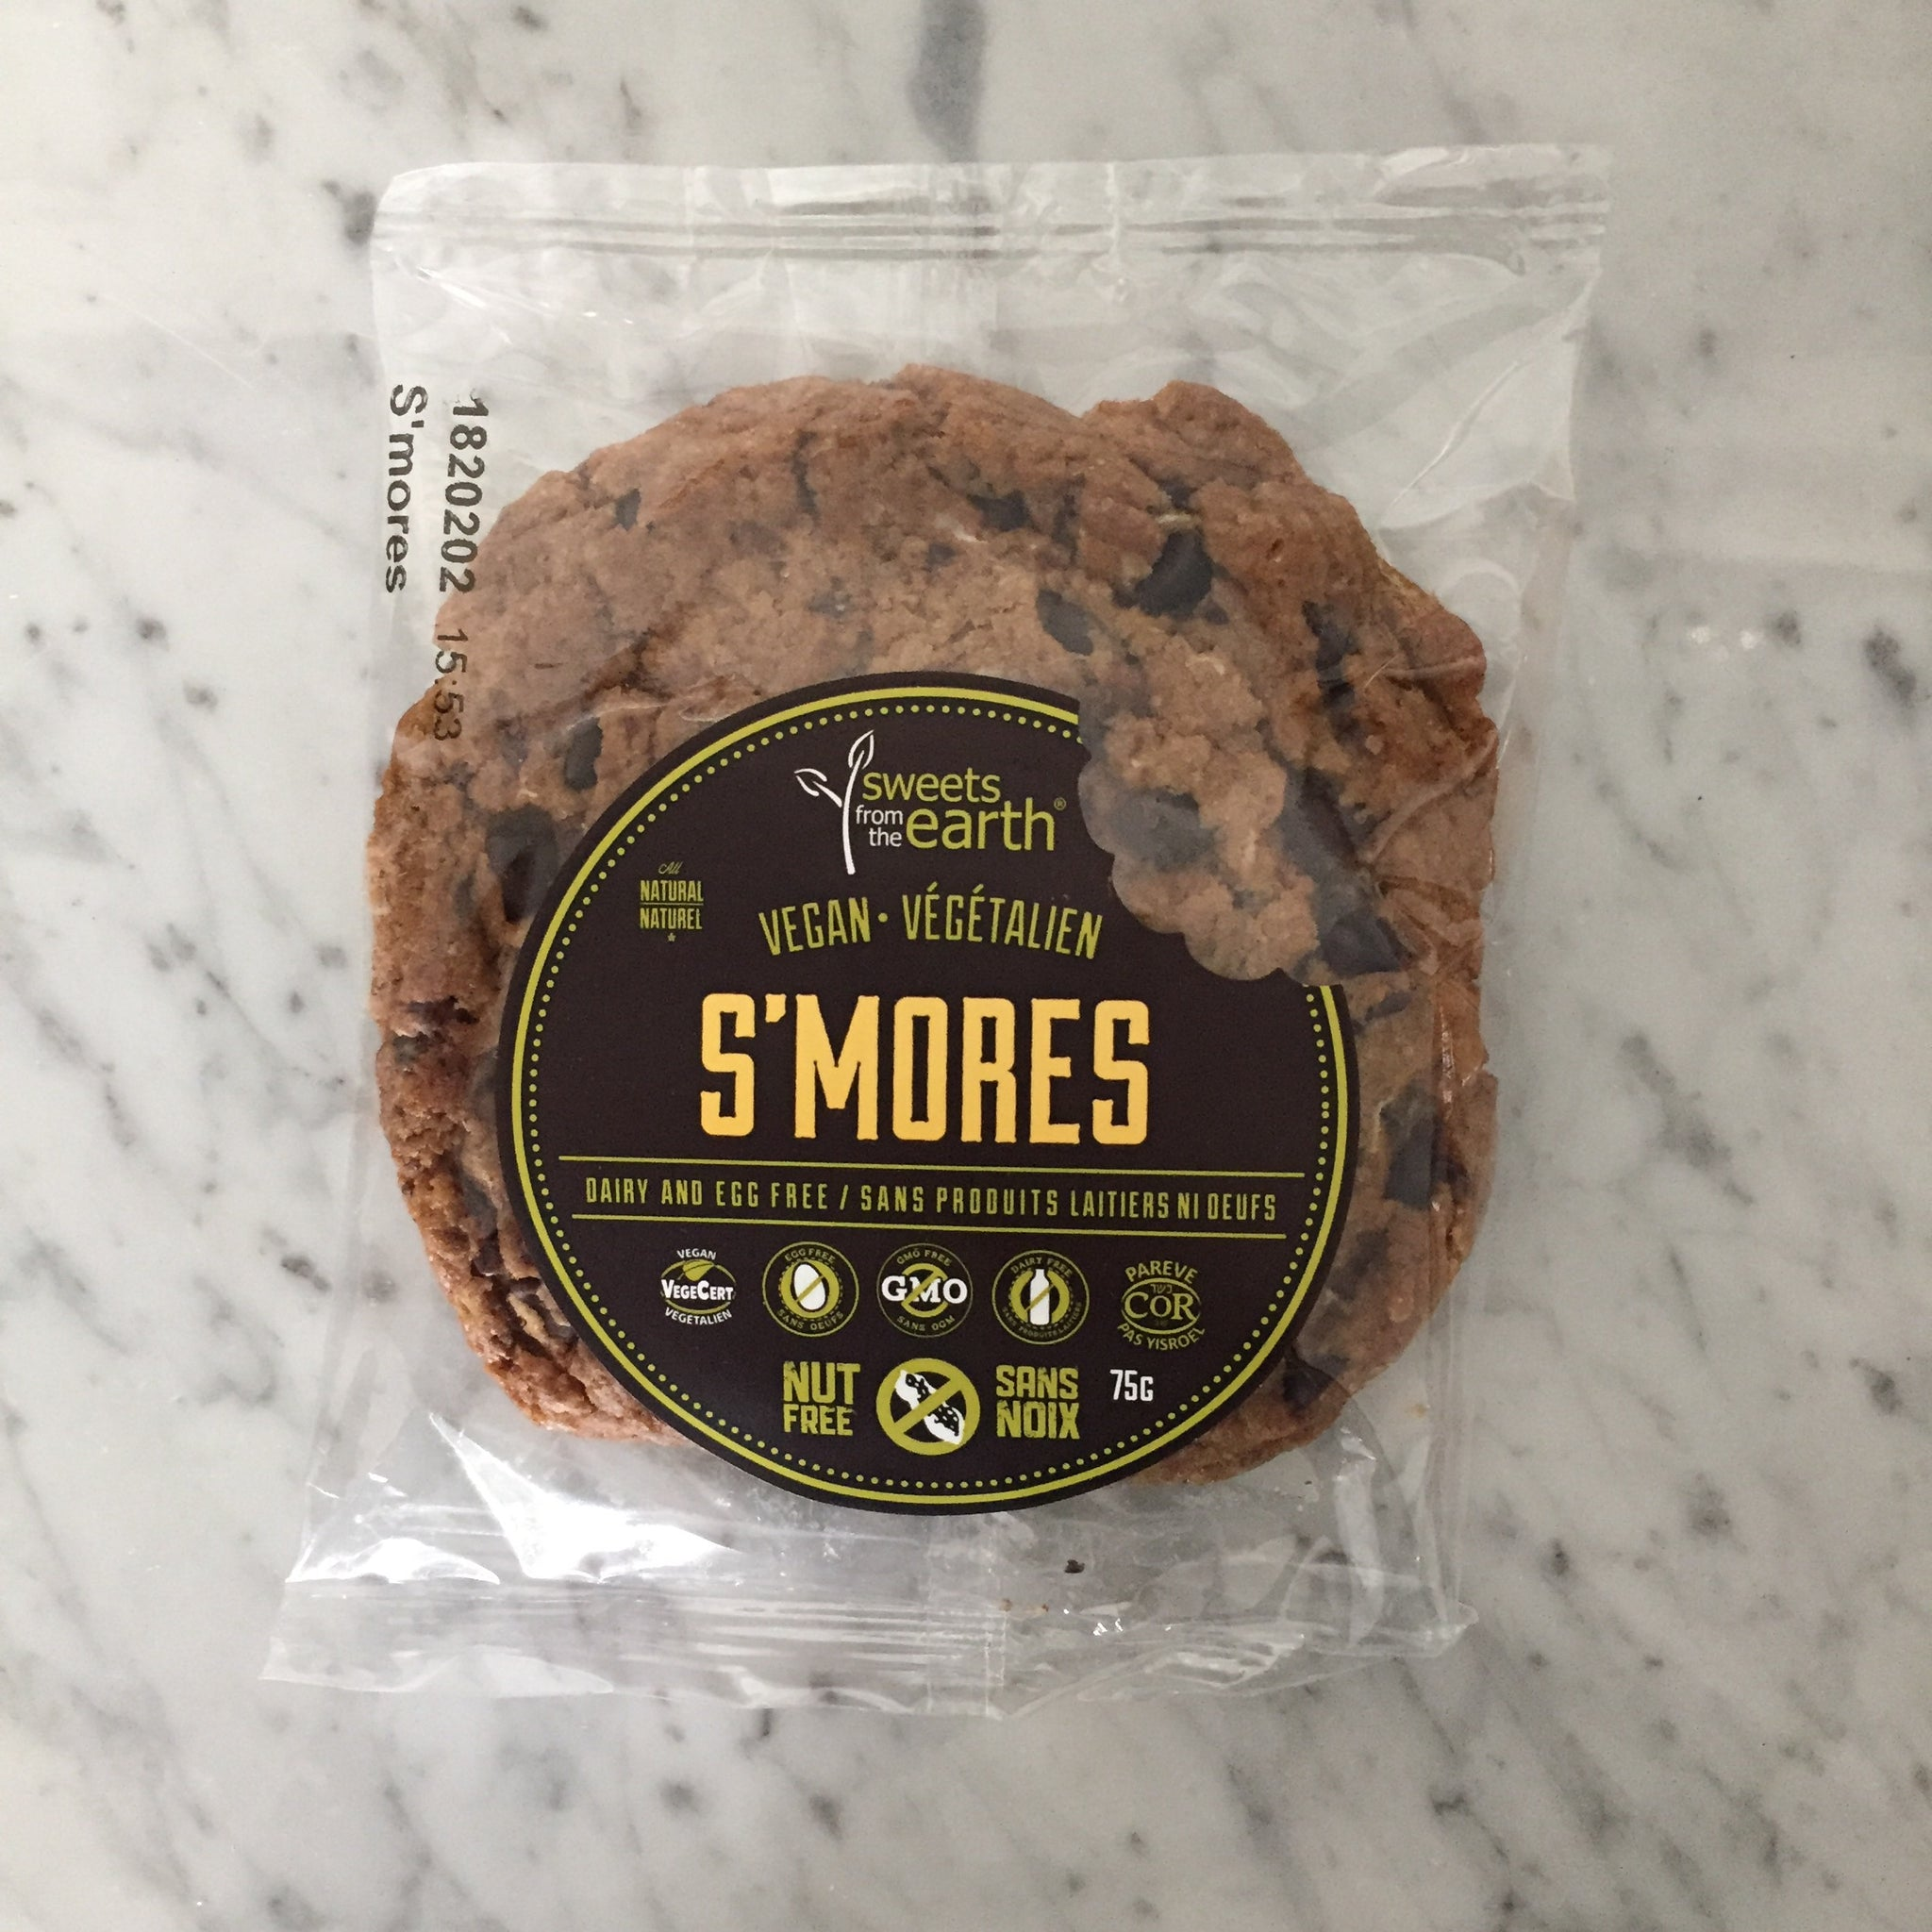 Sweets from the Earth S'mores Cookie (Vegan)